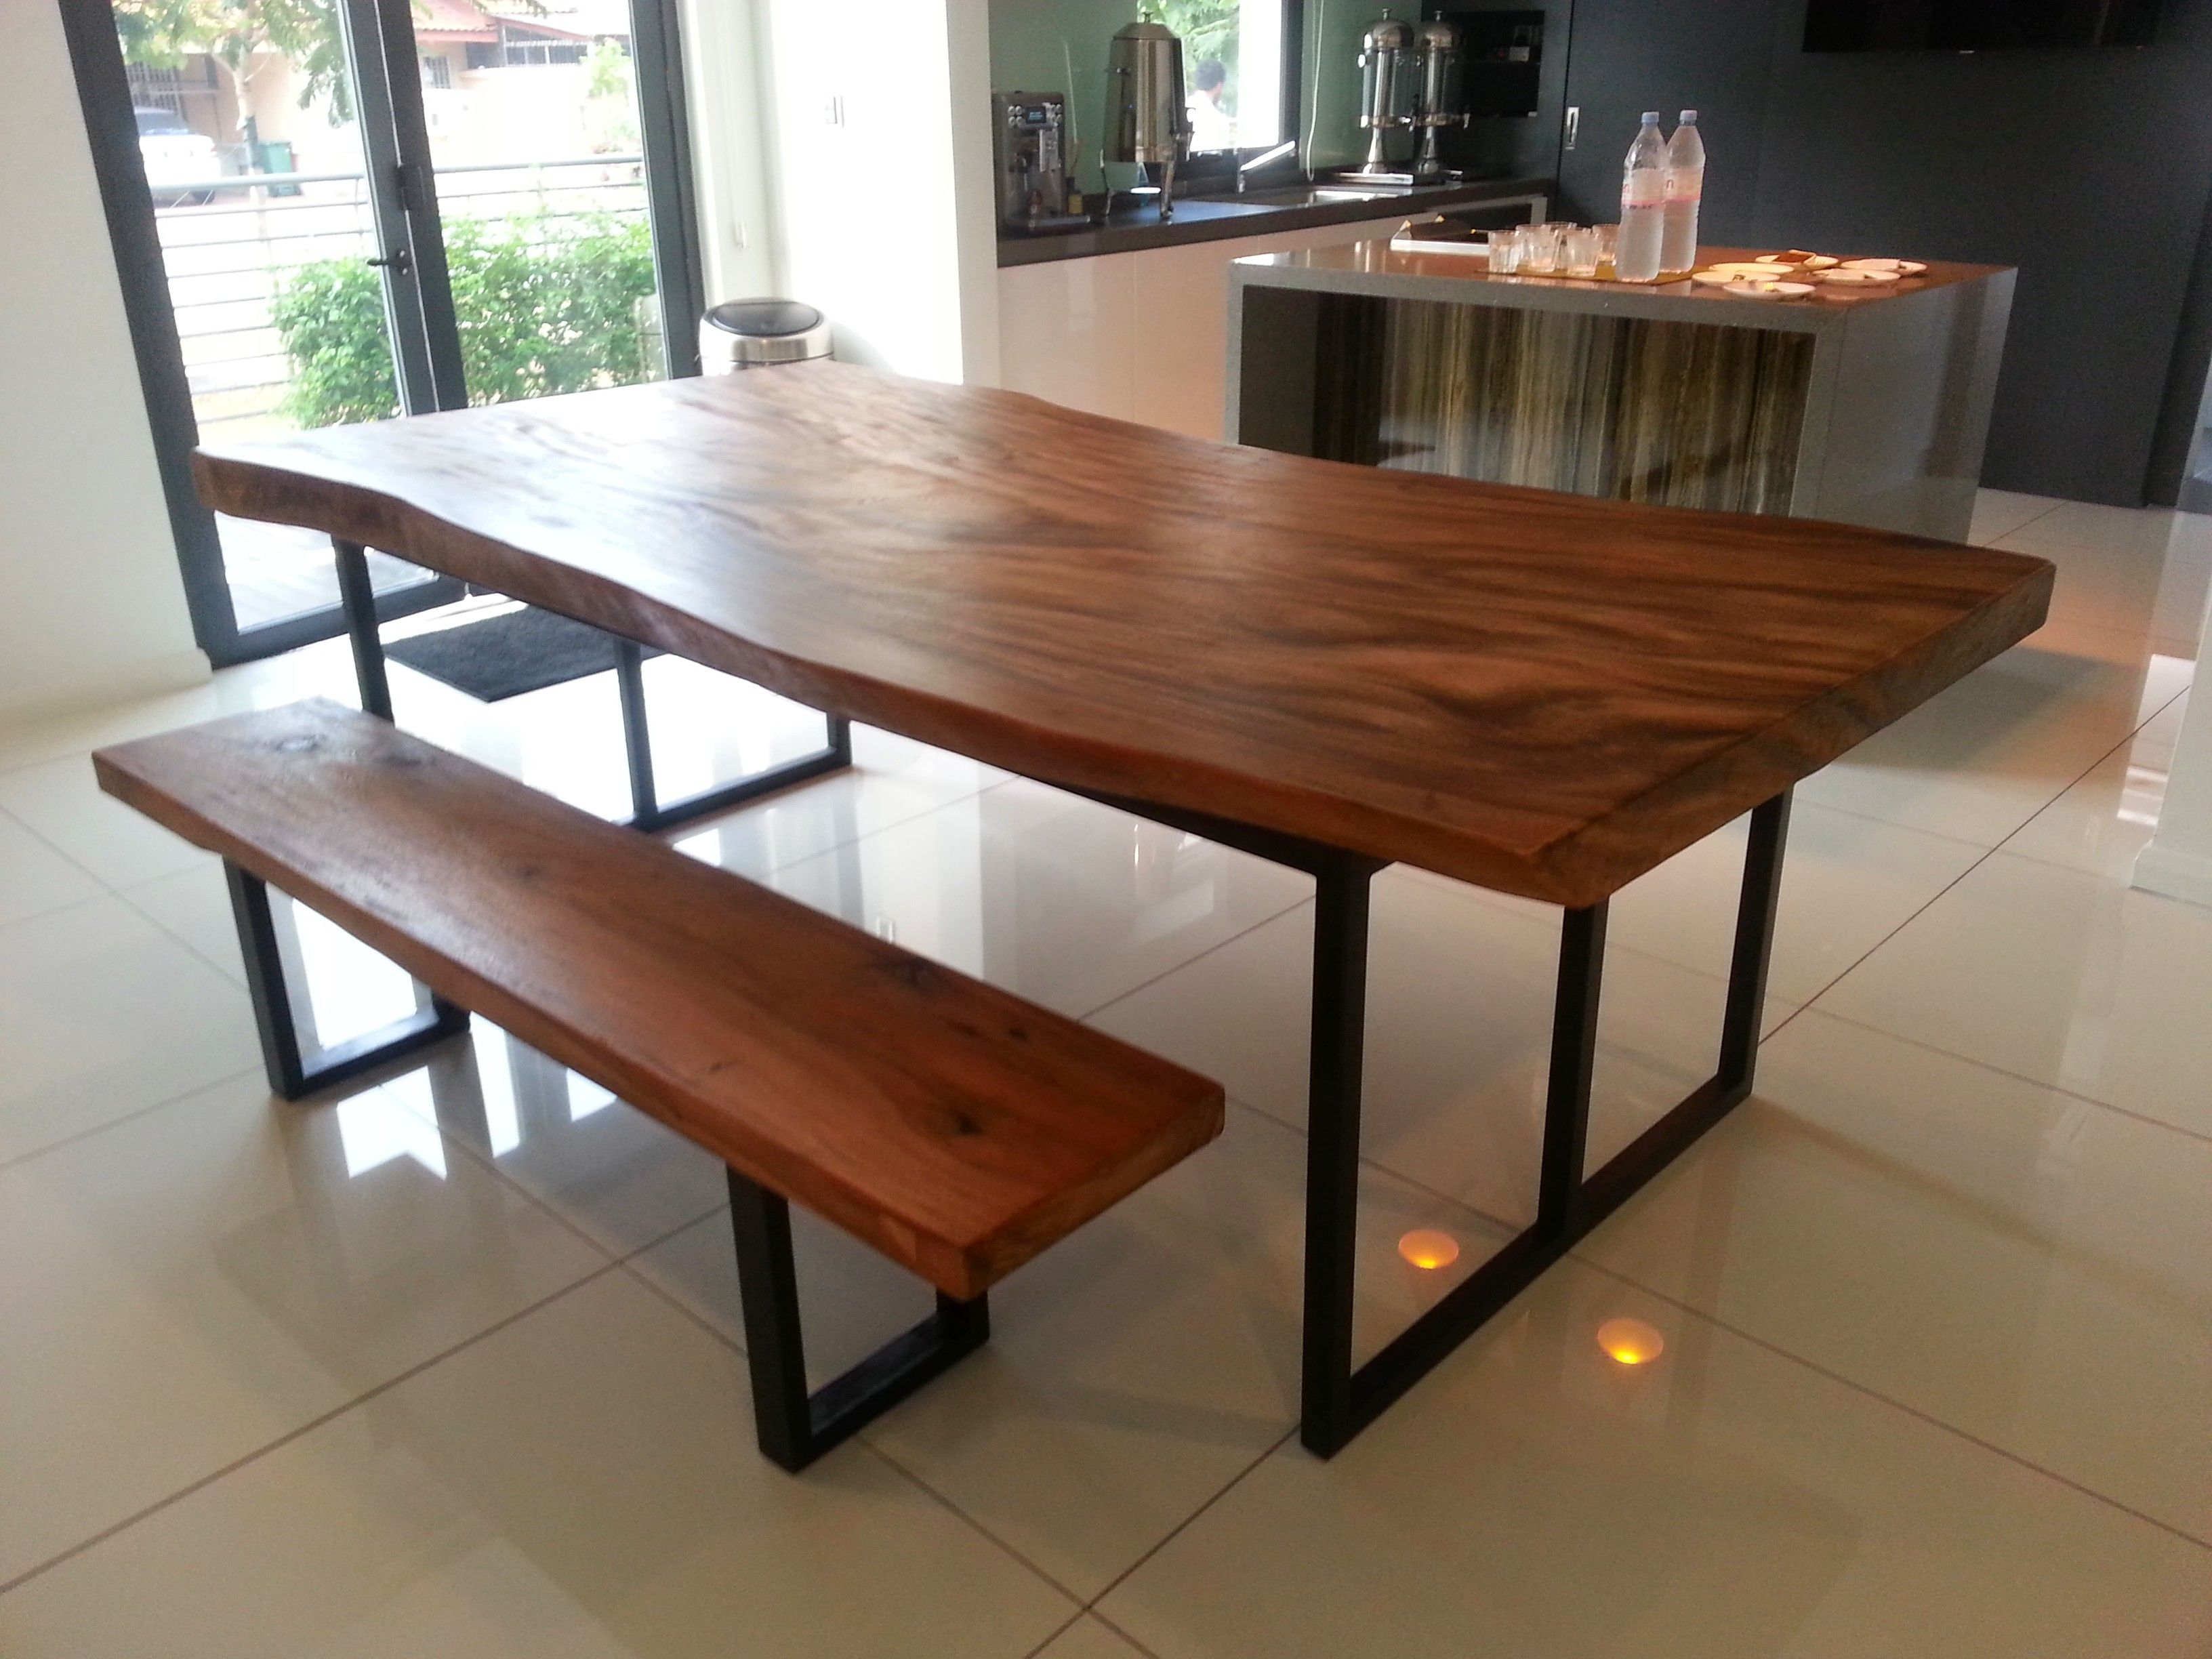 Suar Wood Dining Table With Metal Legs 220x100x78cm Suar